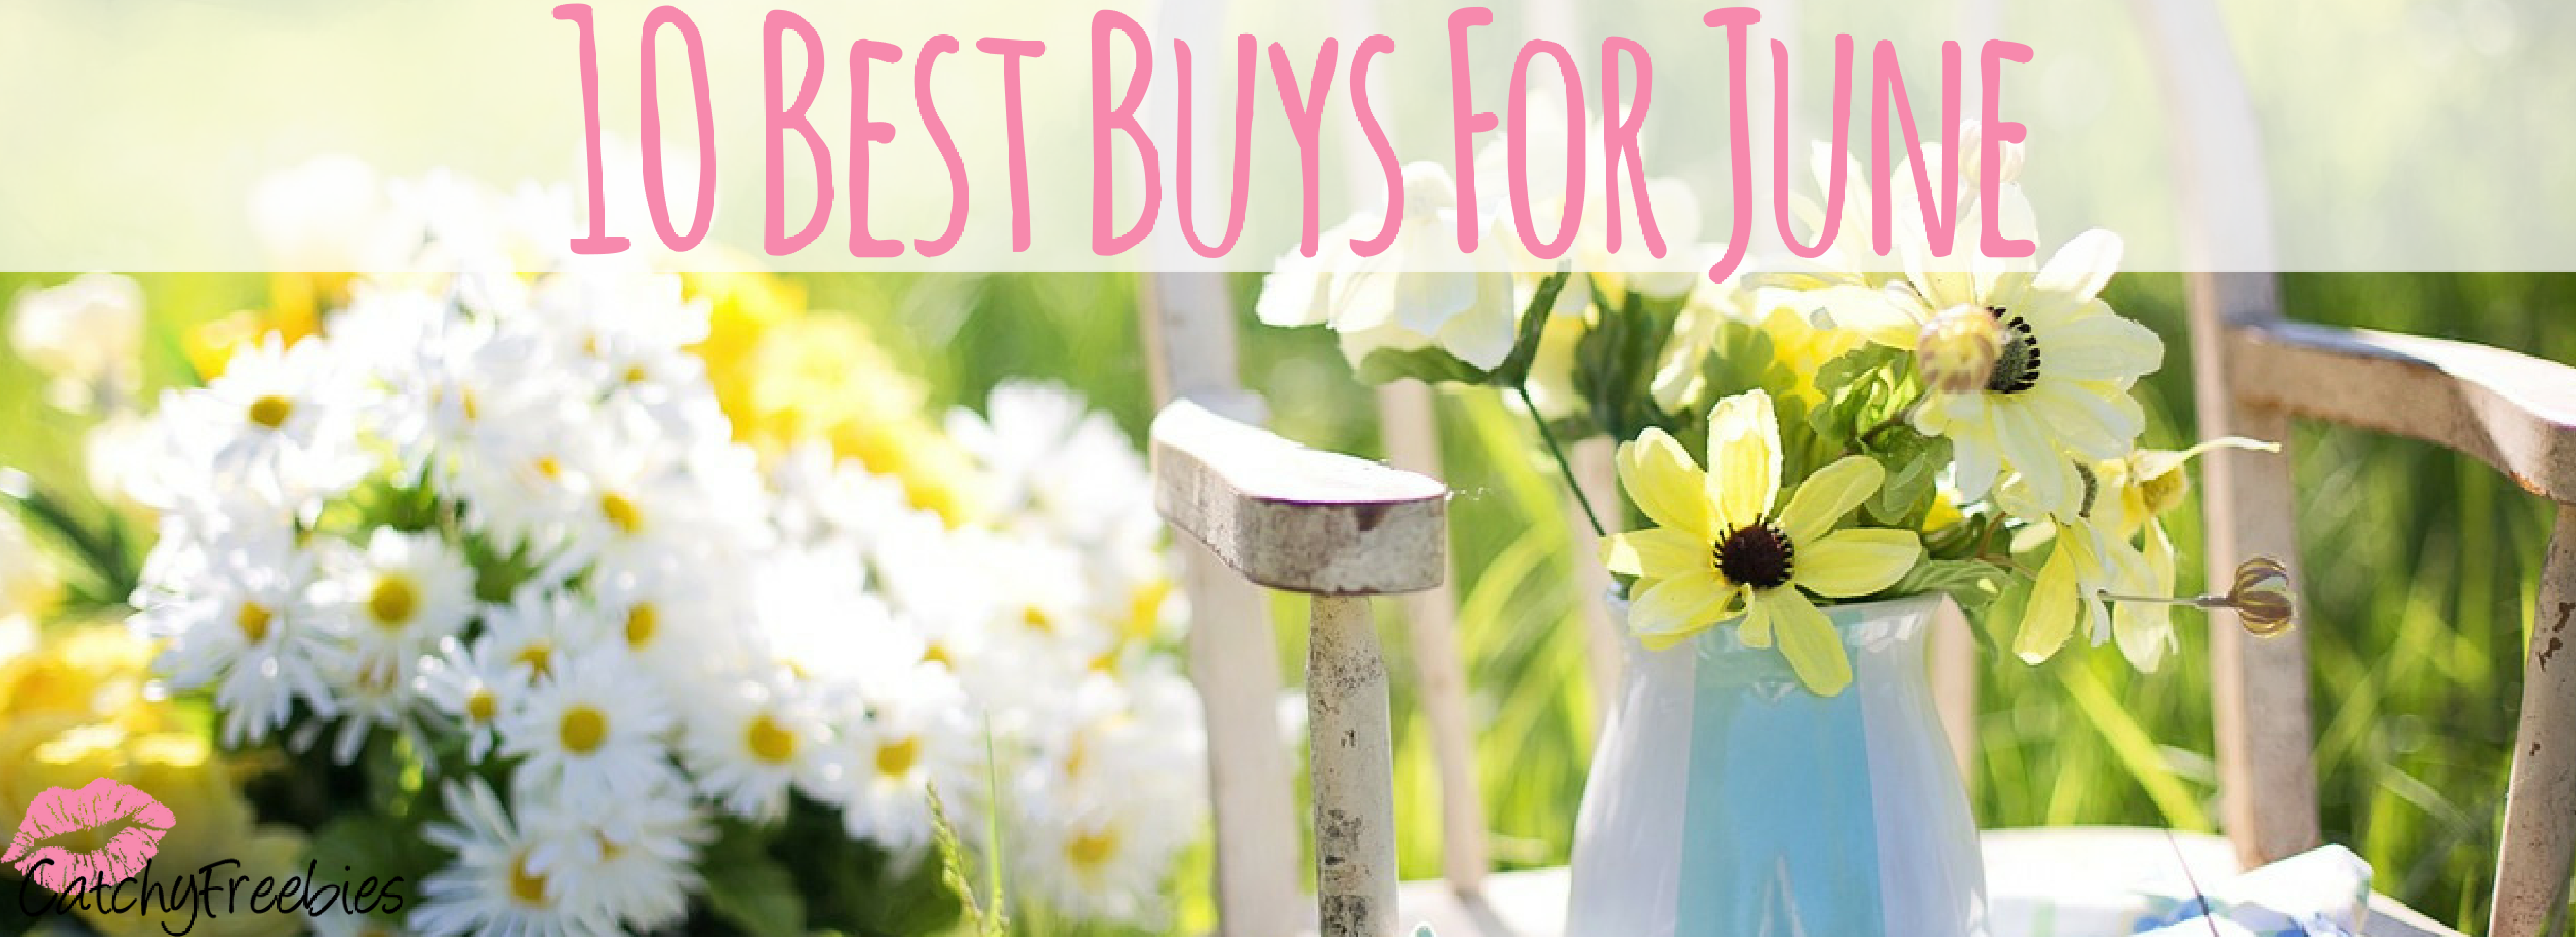 10 Best Buys For June